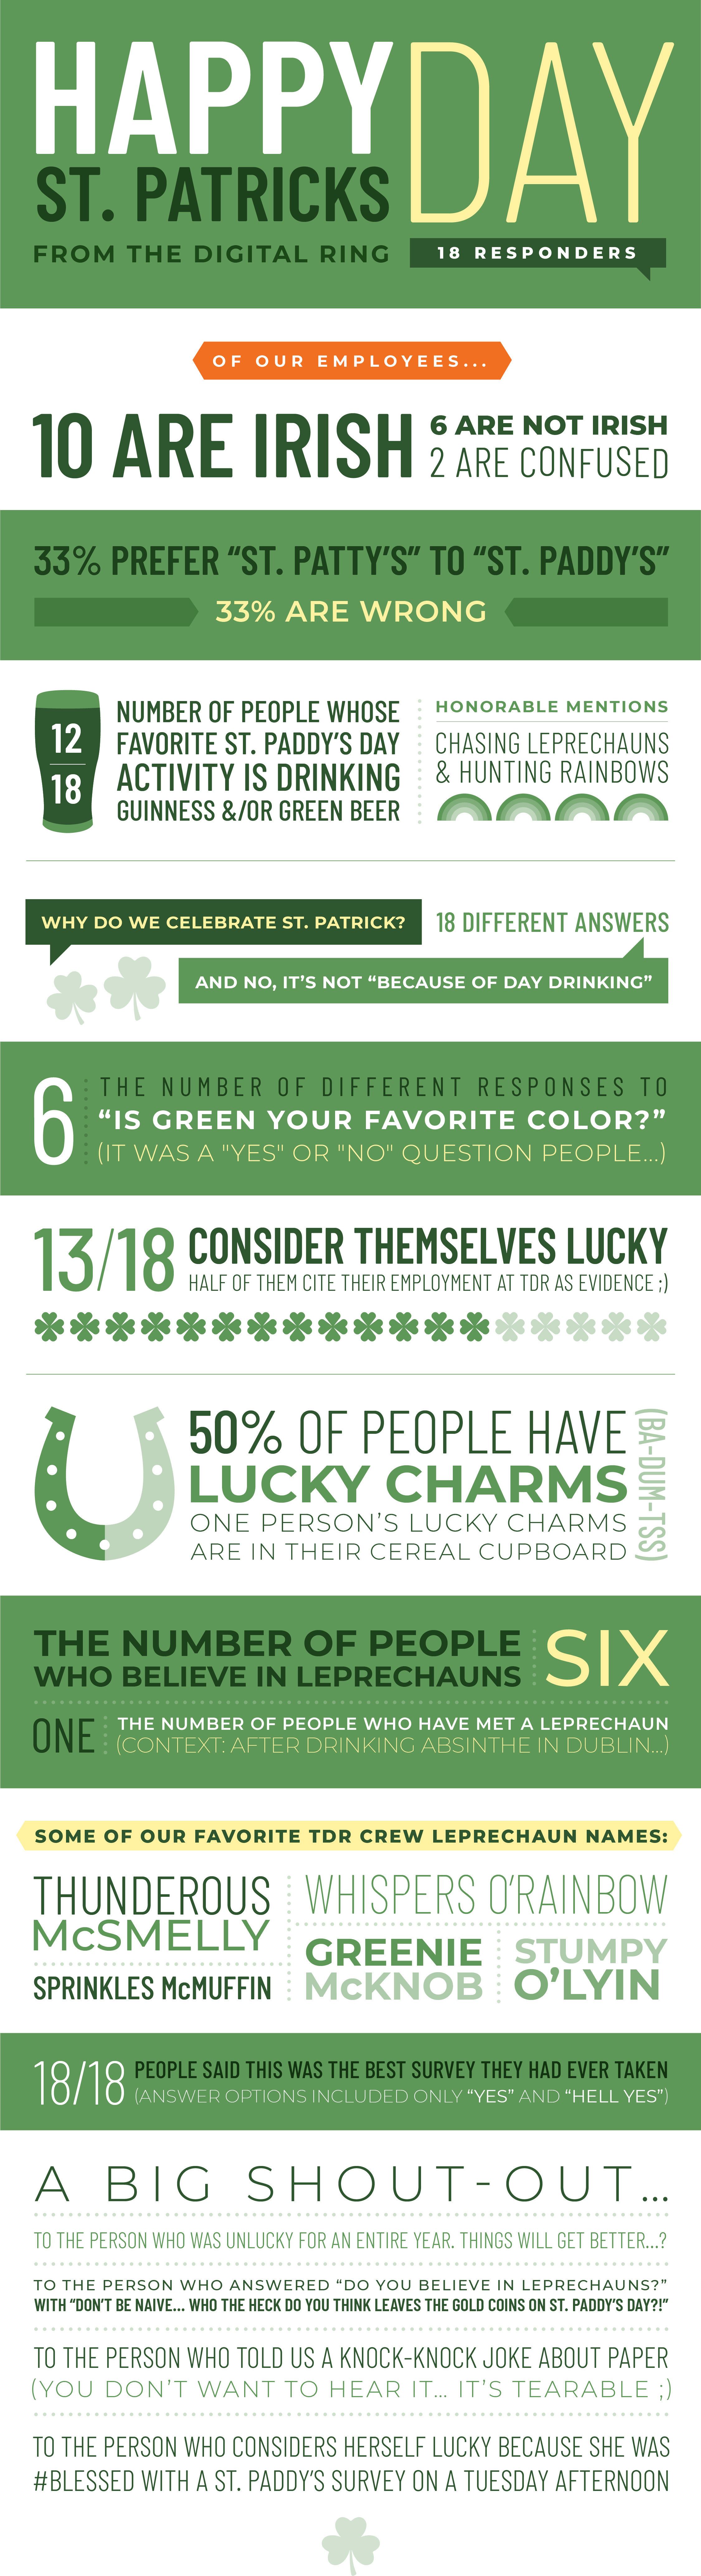 St. Paddy's Day infographic